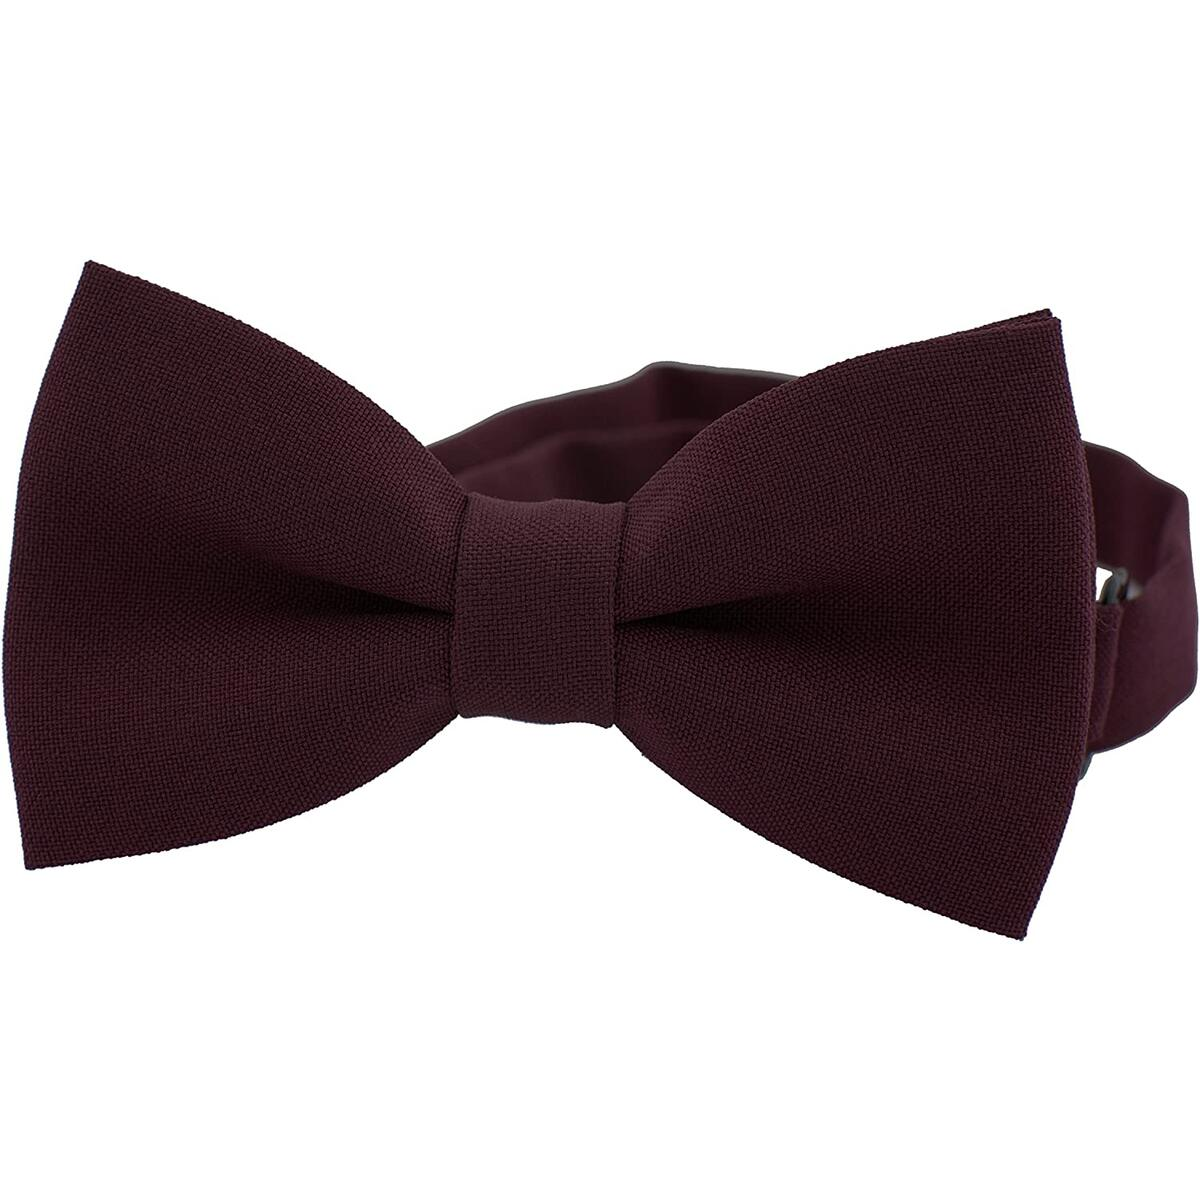 Classic Pre-Tied Bow Tie Formal Solid Tuxedo, by Bow Tie House (Small, Marsala)